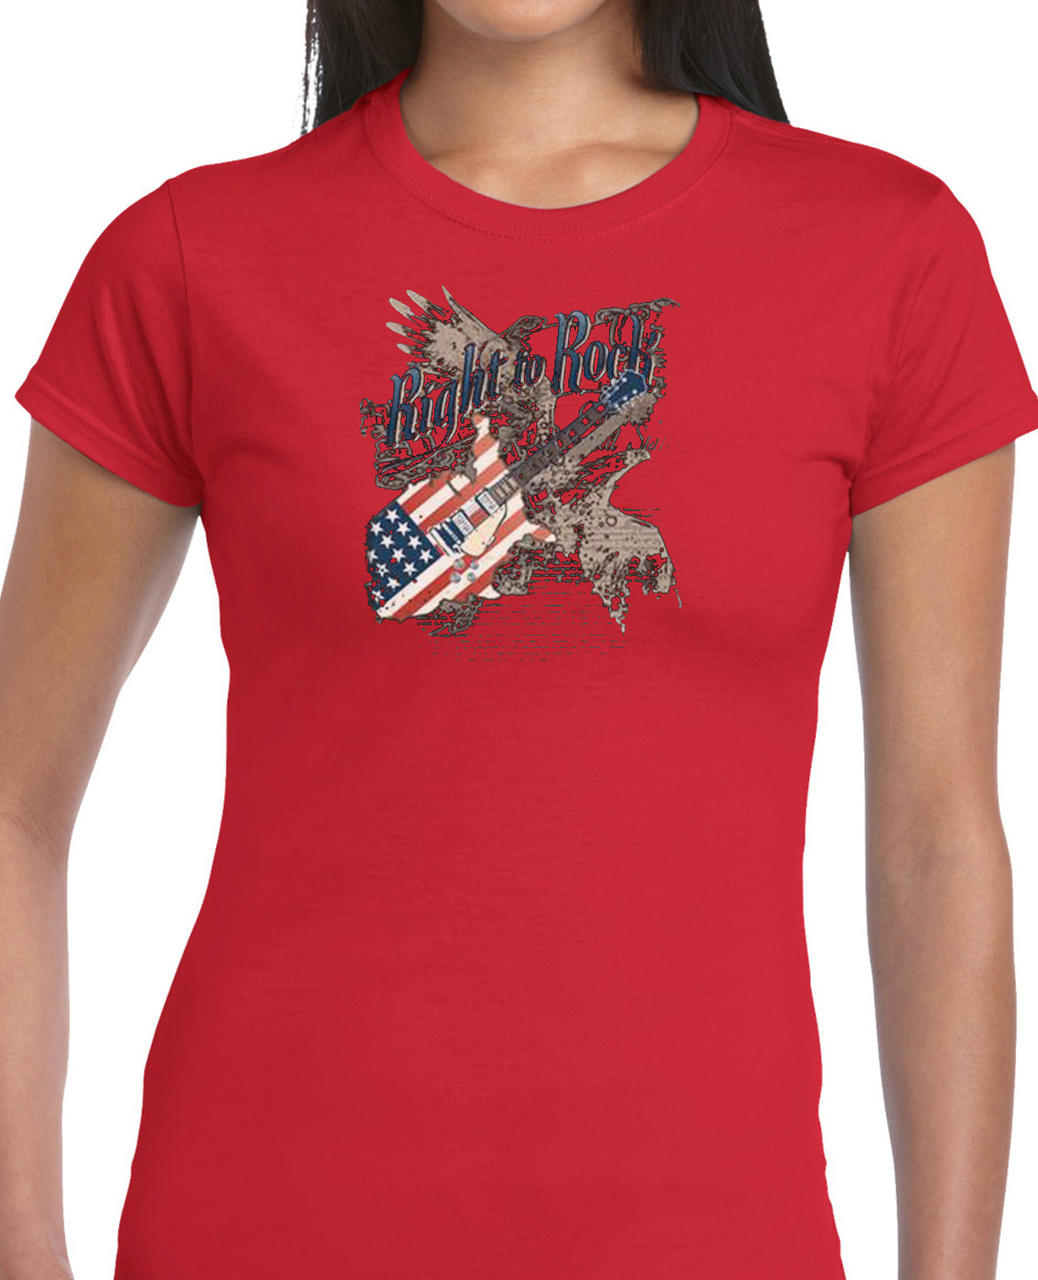 Right To Rock Women's Short Sleeve T-Shirt